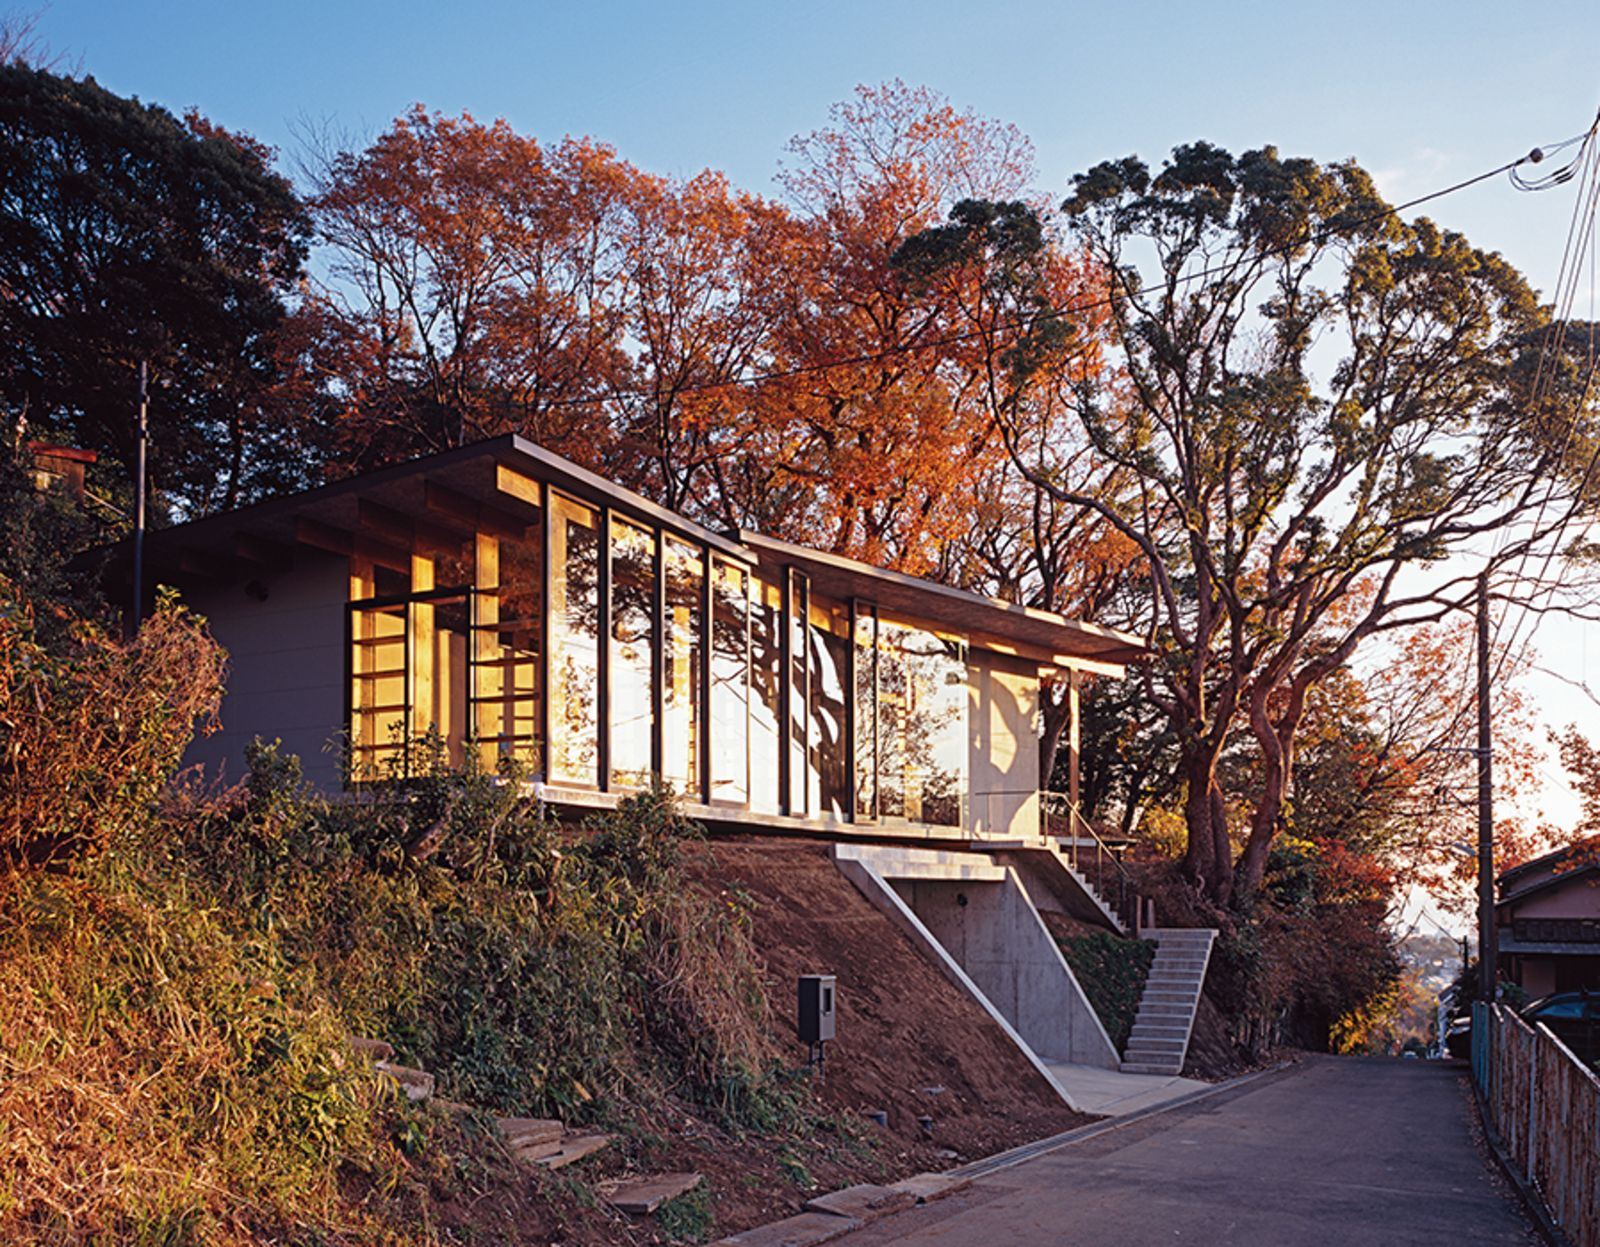 photo 7 of 8 in japanese home among the trees uses bookshelves and rh pinterest com